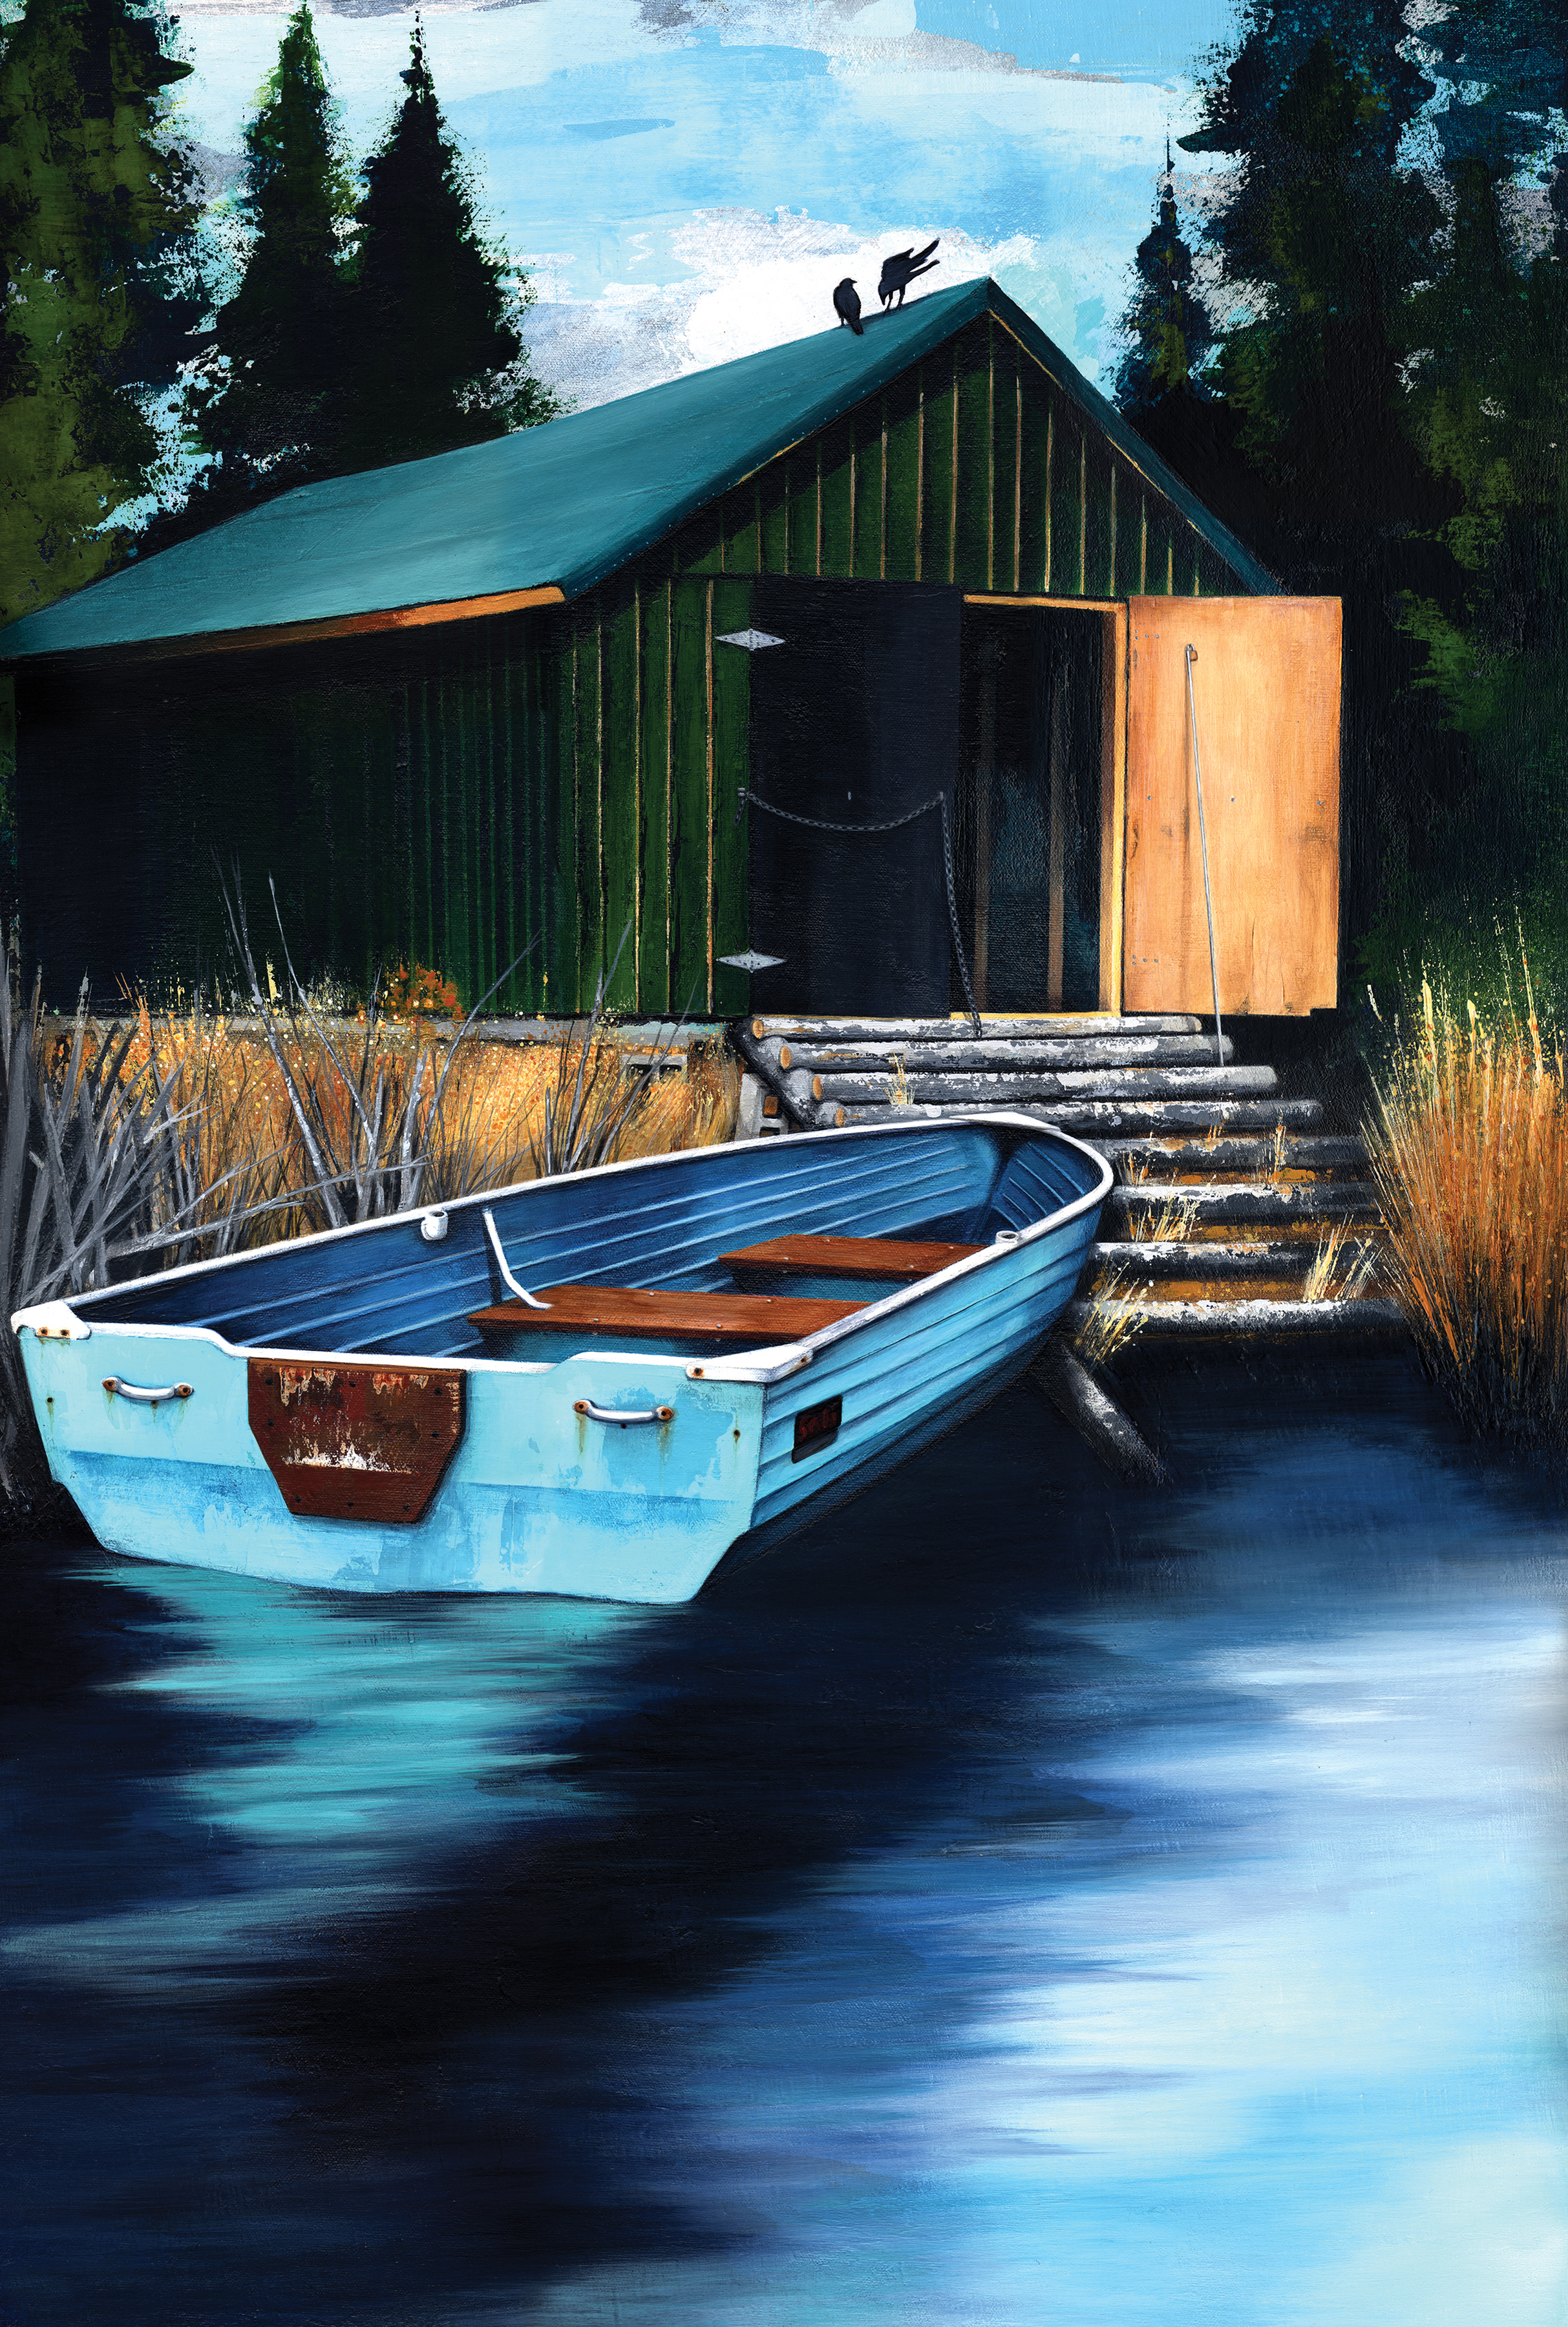 The Boathouse Beckons